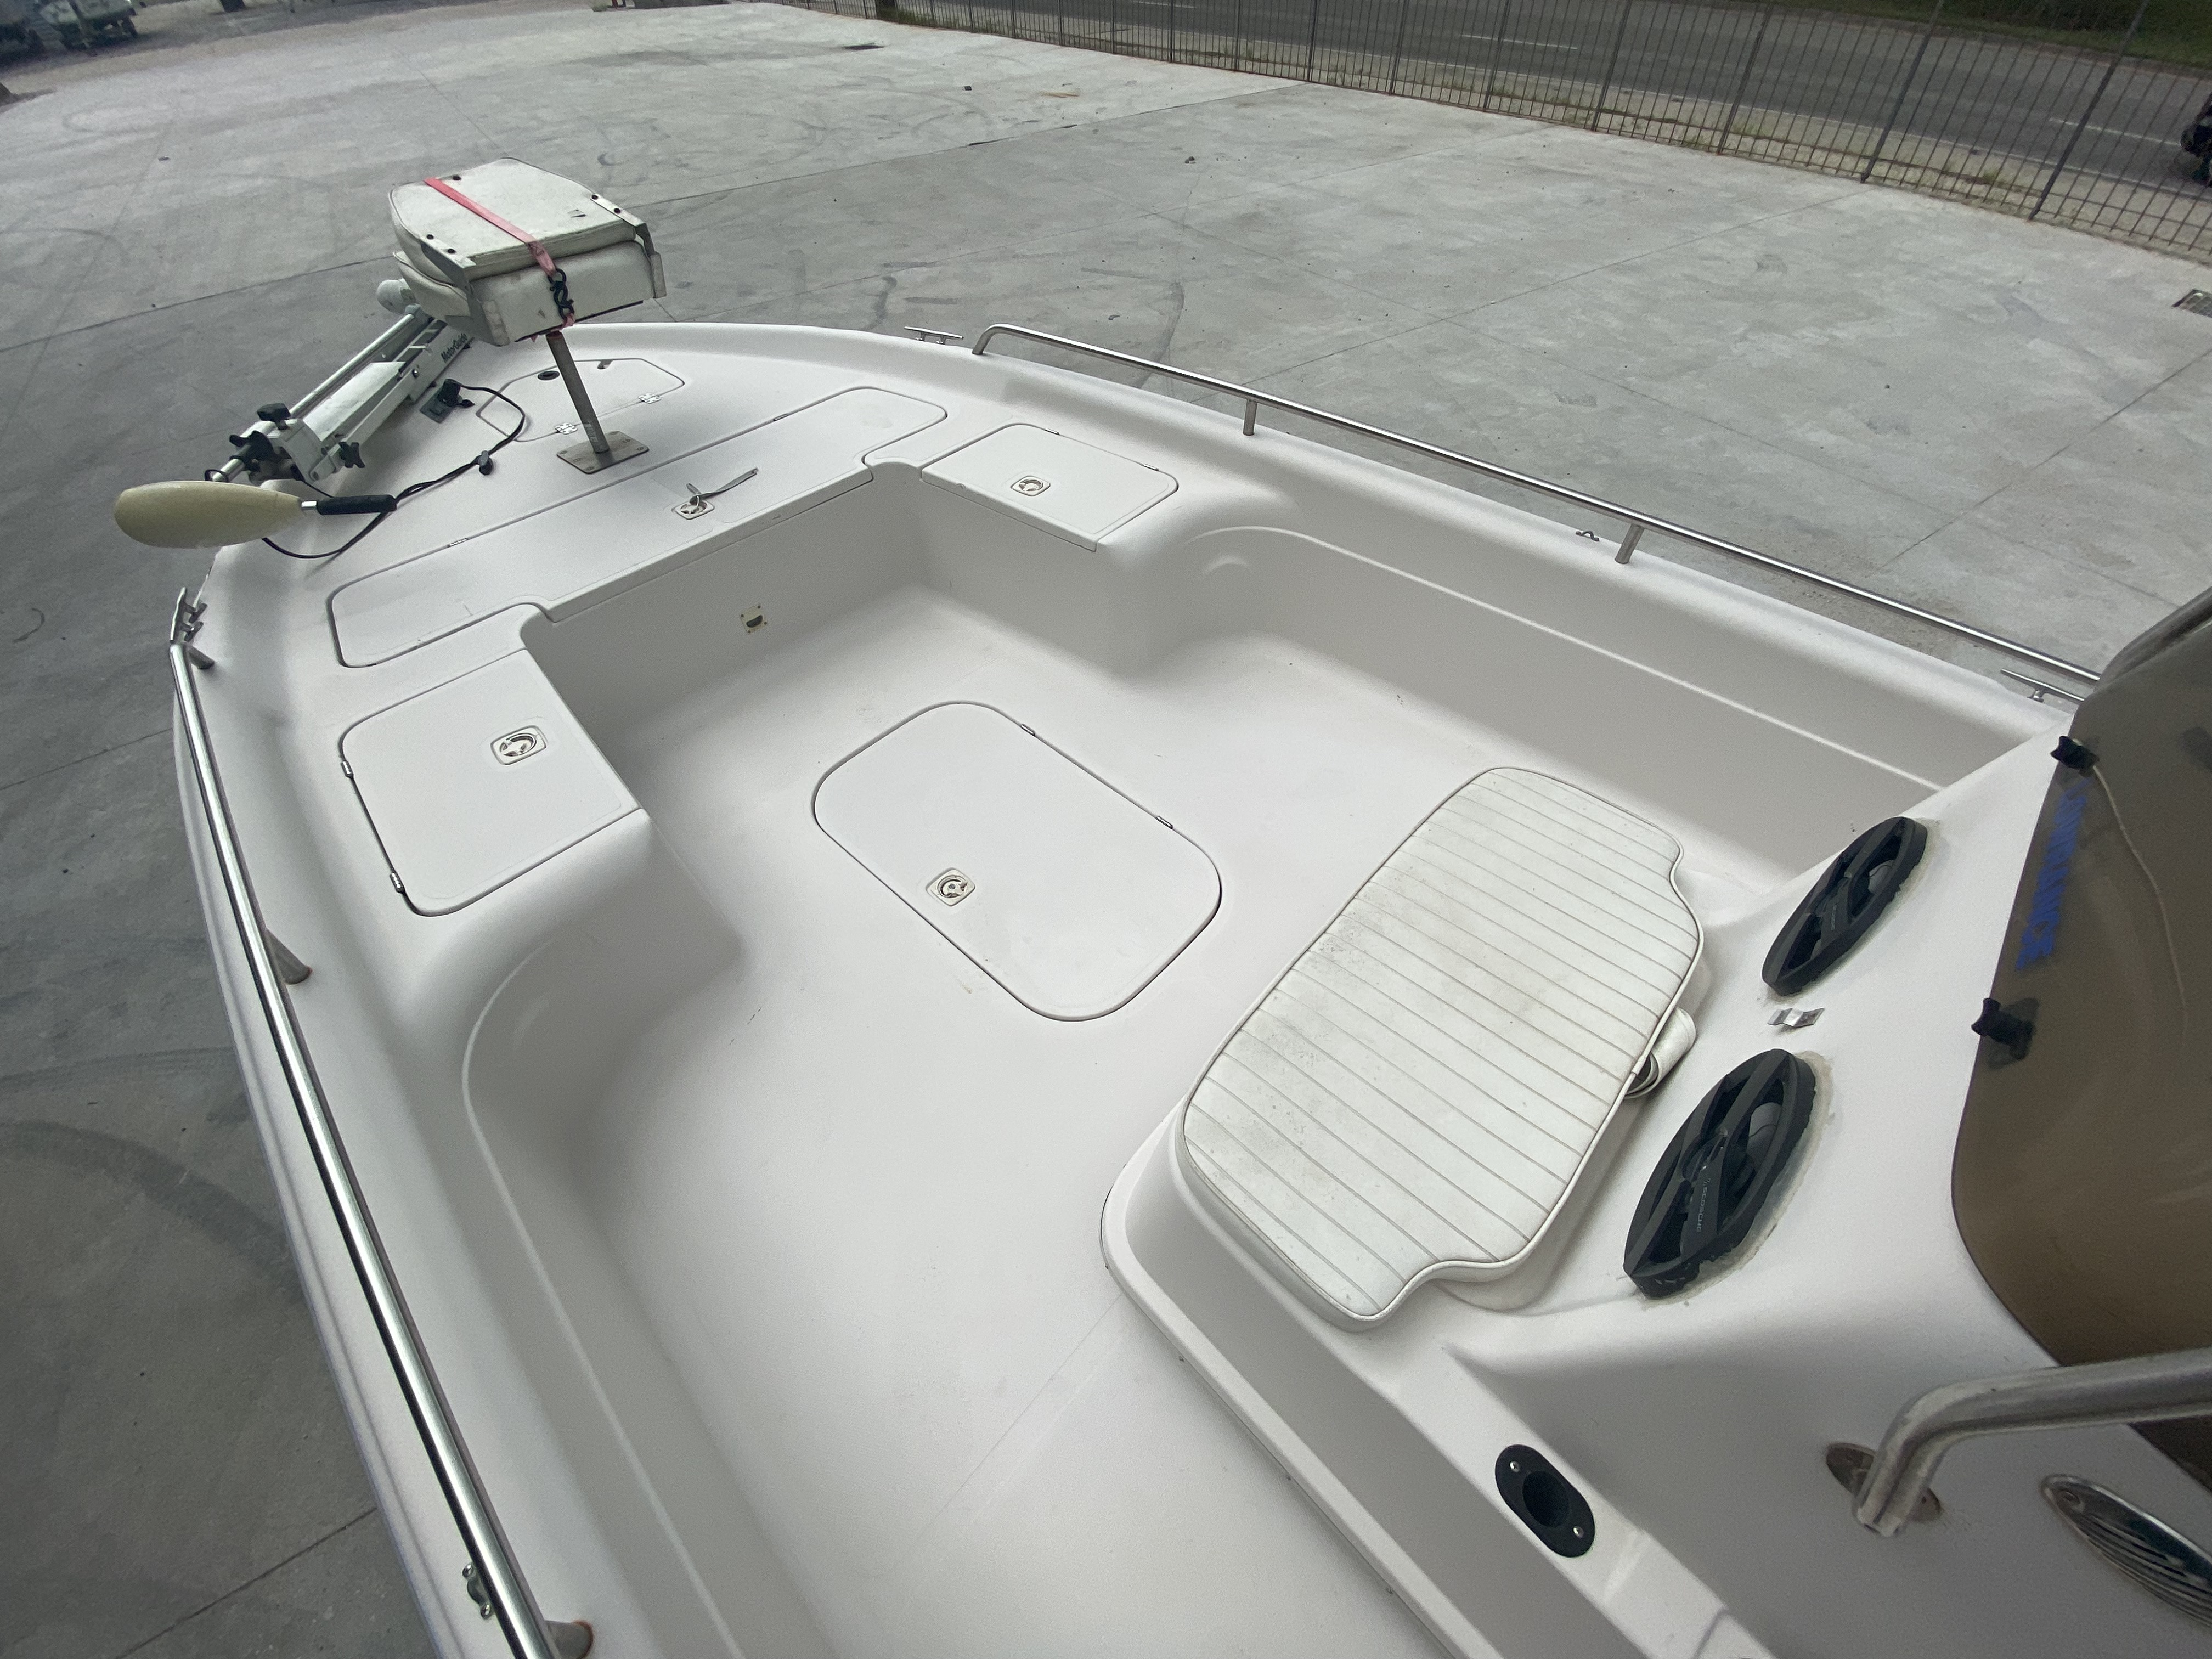 2001 Fish Master boat for sale, model of the boat is 23cc Travis Edition & Image # 10 of 11